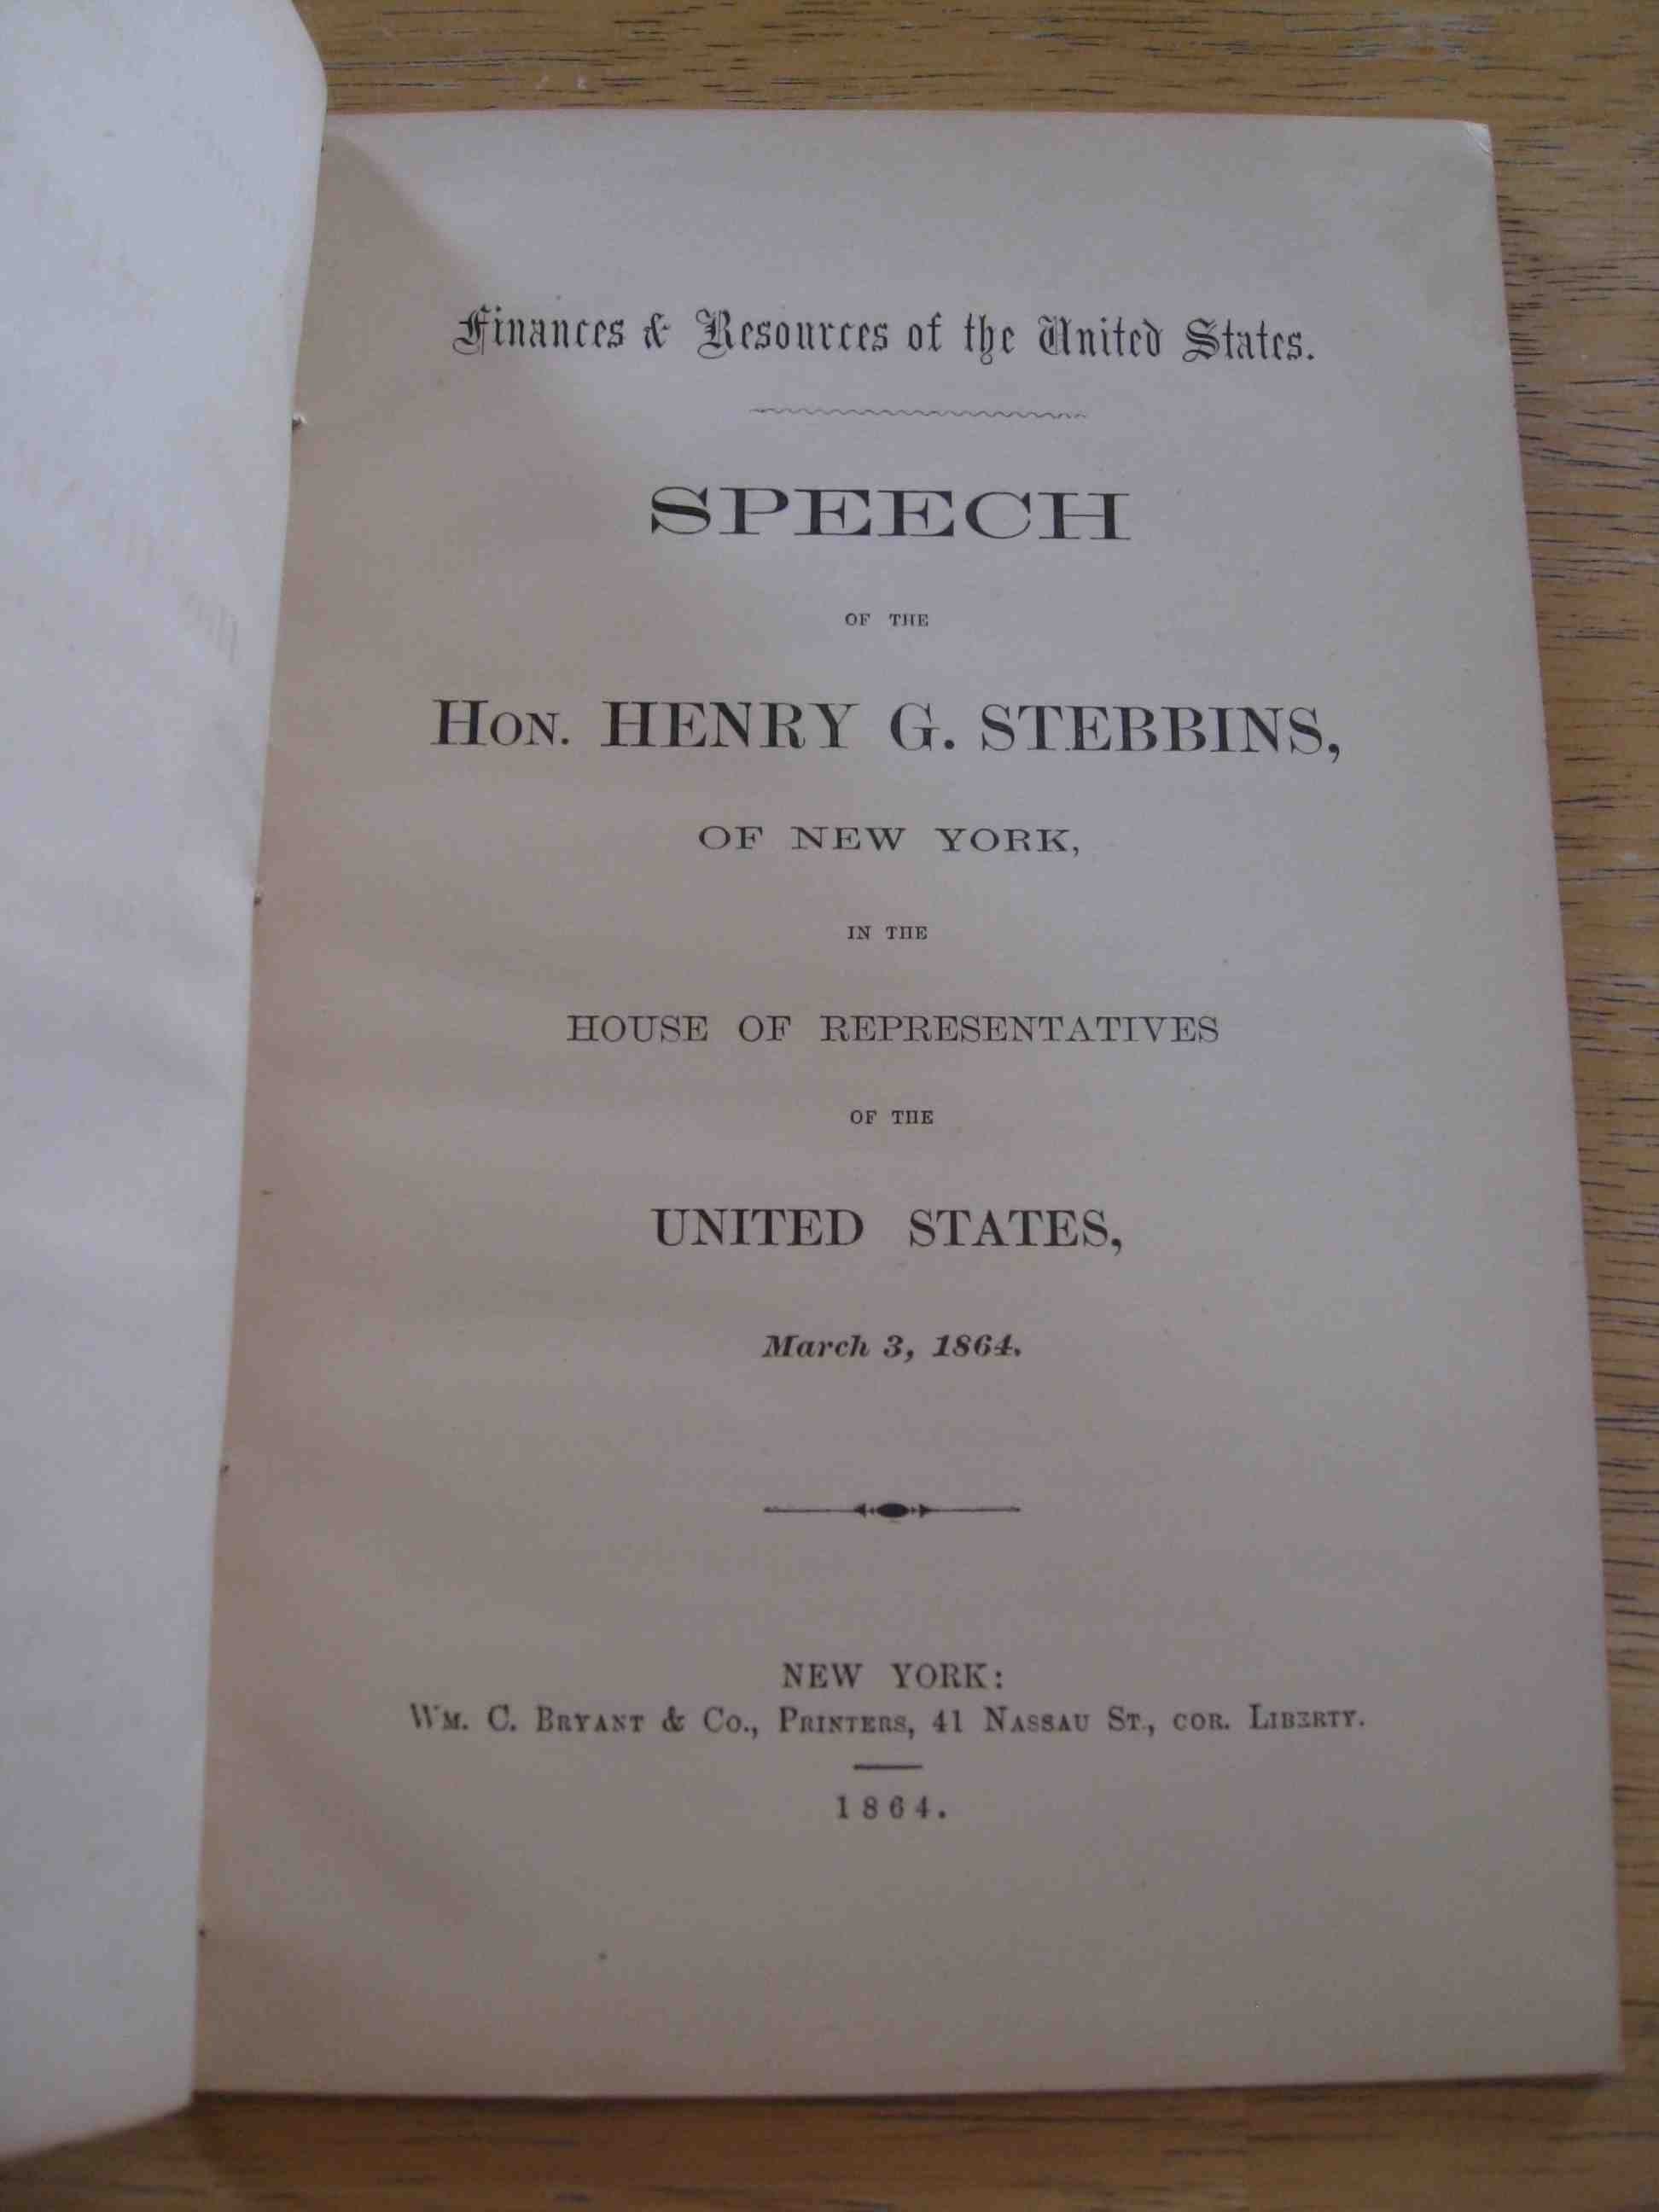 Image for SPEECH OF THE HON. HENRY G. STEBBINS, OF NEW YORK, IN THE HOUSE OF REPRESENTATIVES OF THE UNITED STATES, MARCH 3, 1864